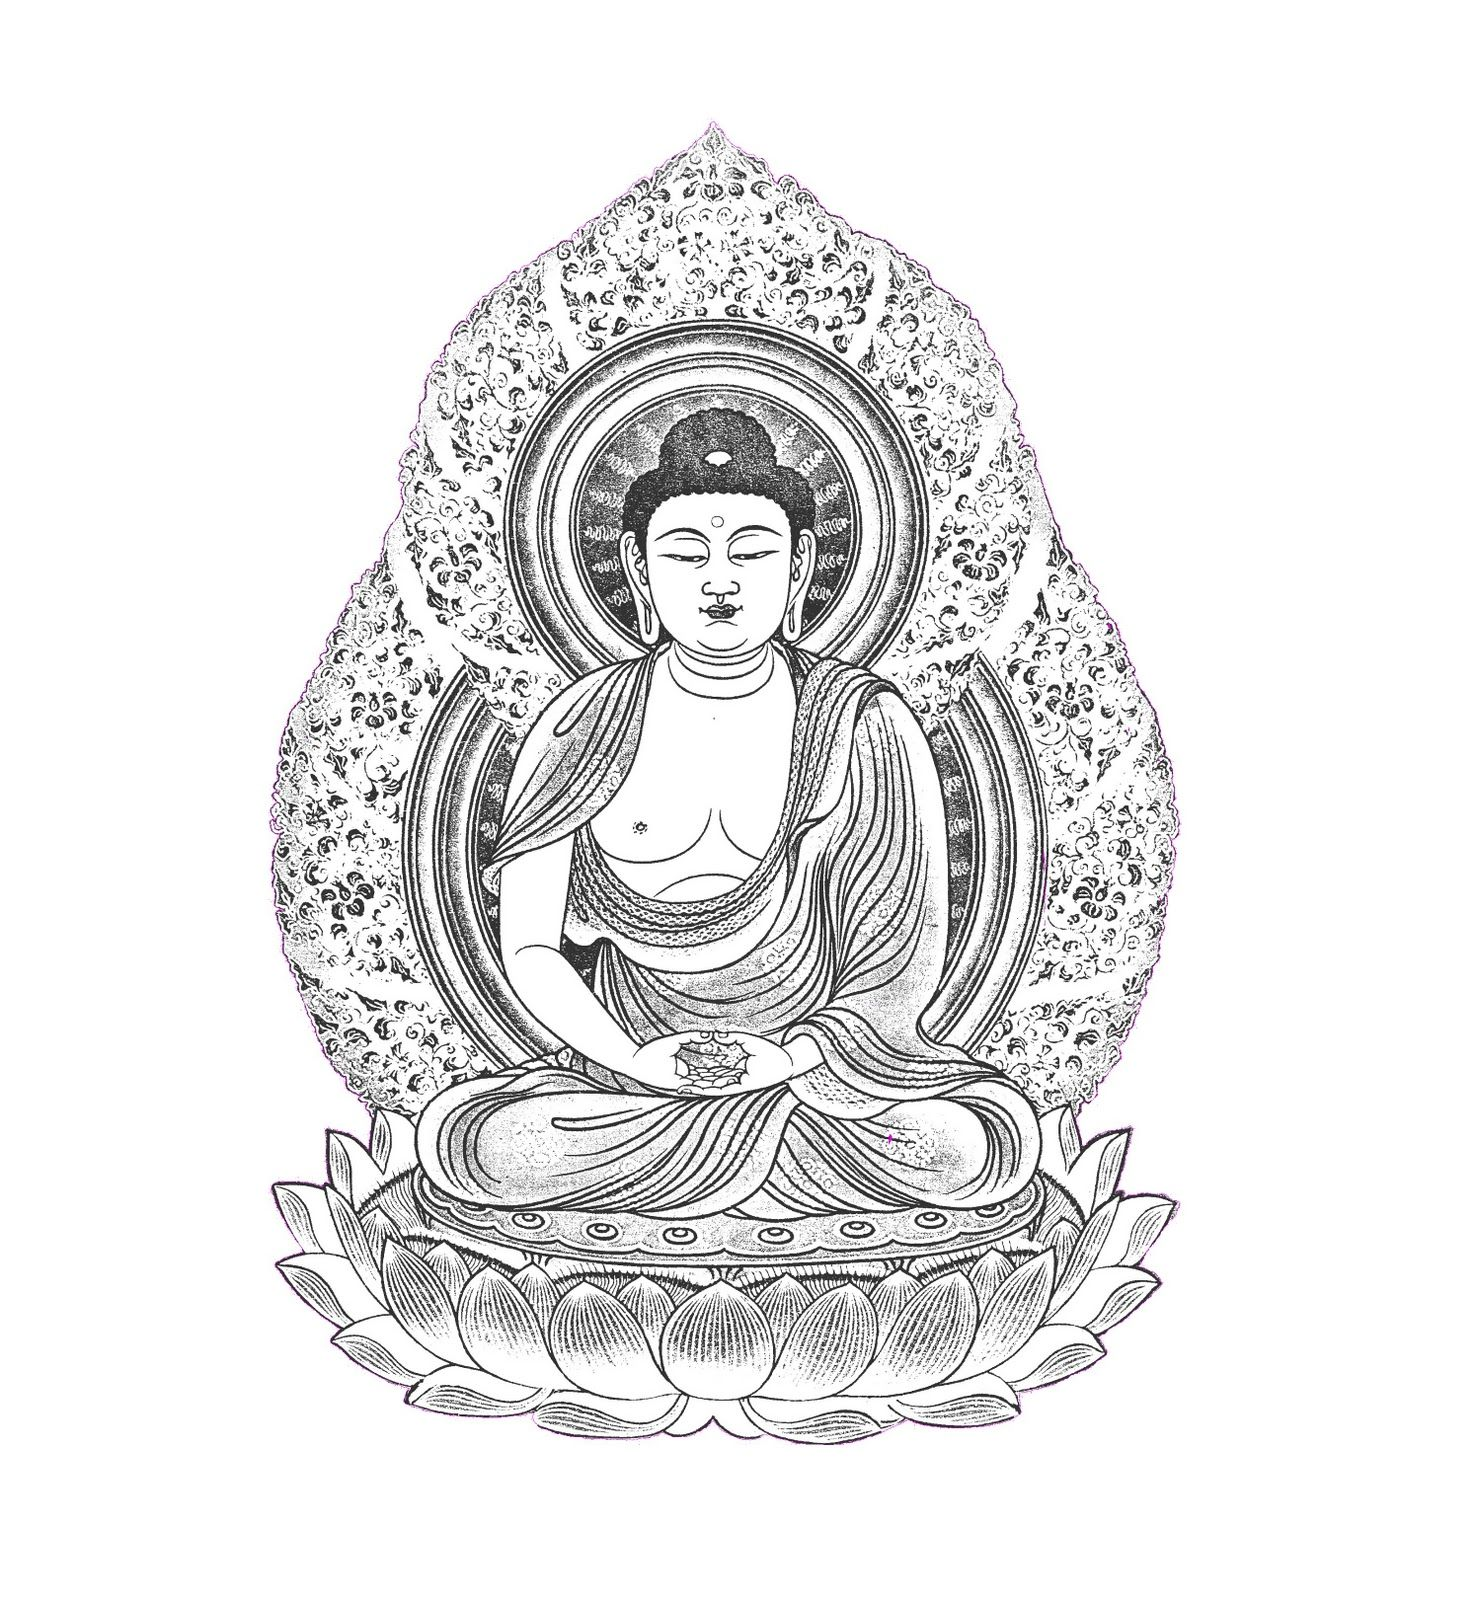 buddha coloring pages Free Buddha Coloring Page | Artwork | Buddha, Mandala, Buddhism buddha coloring pages